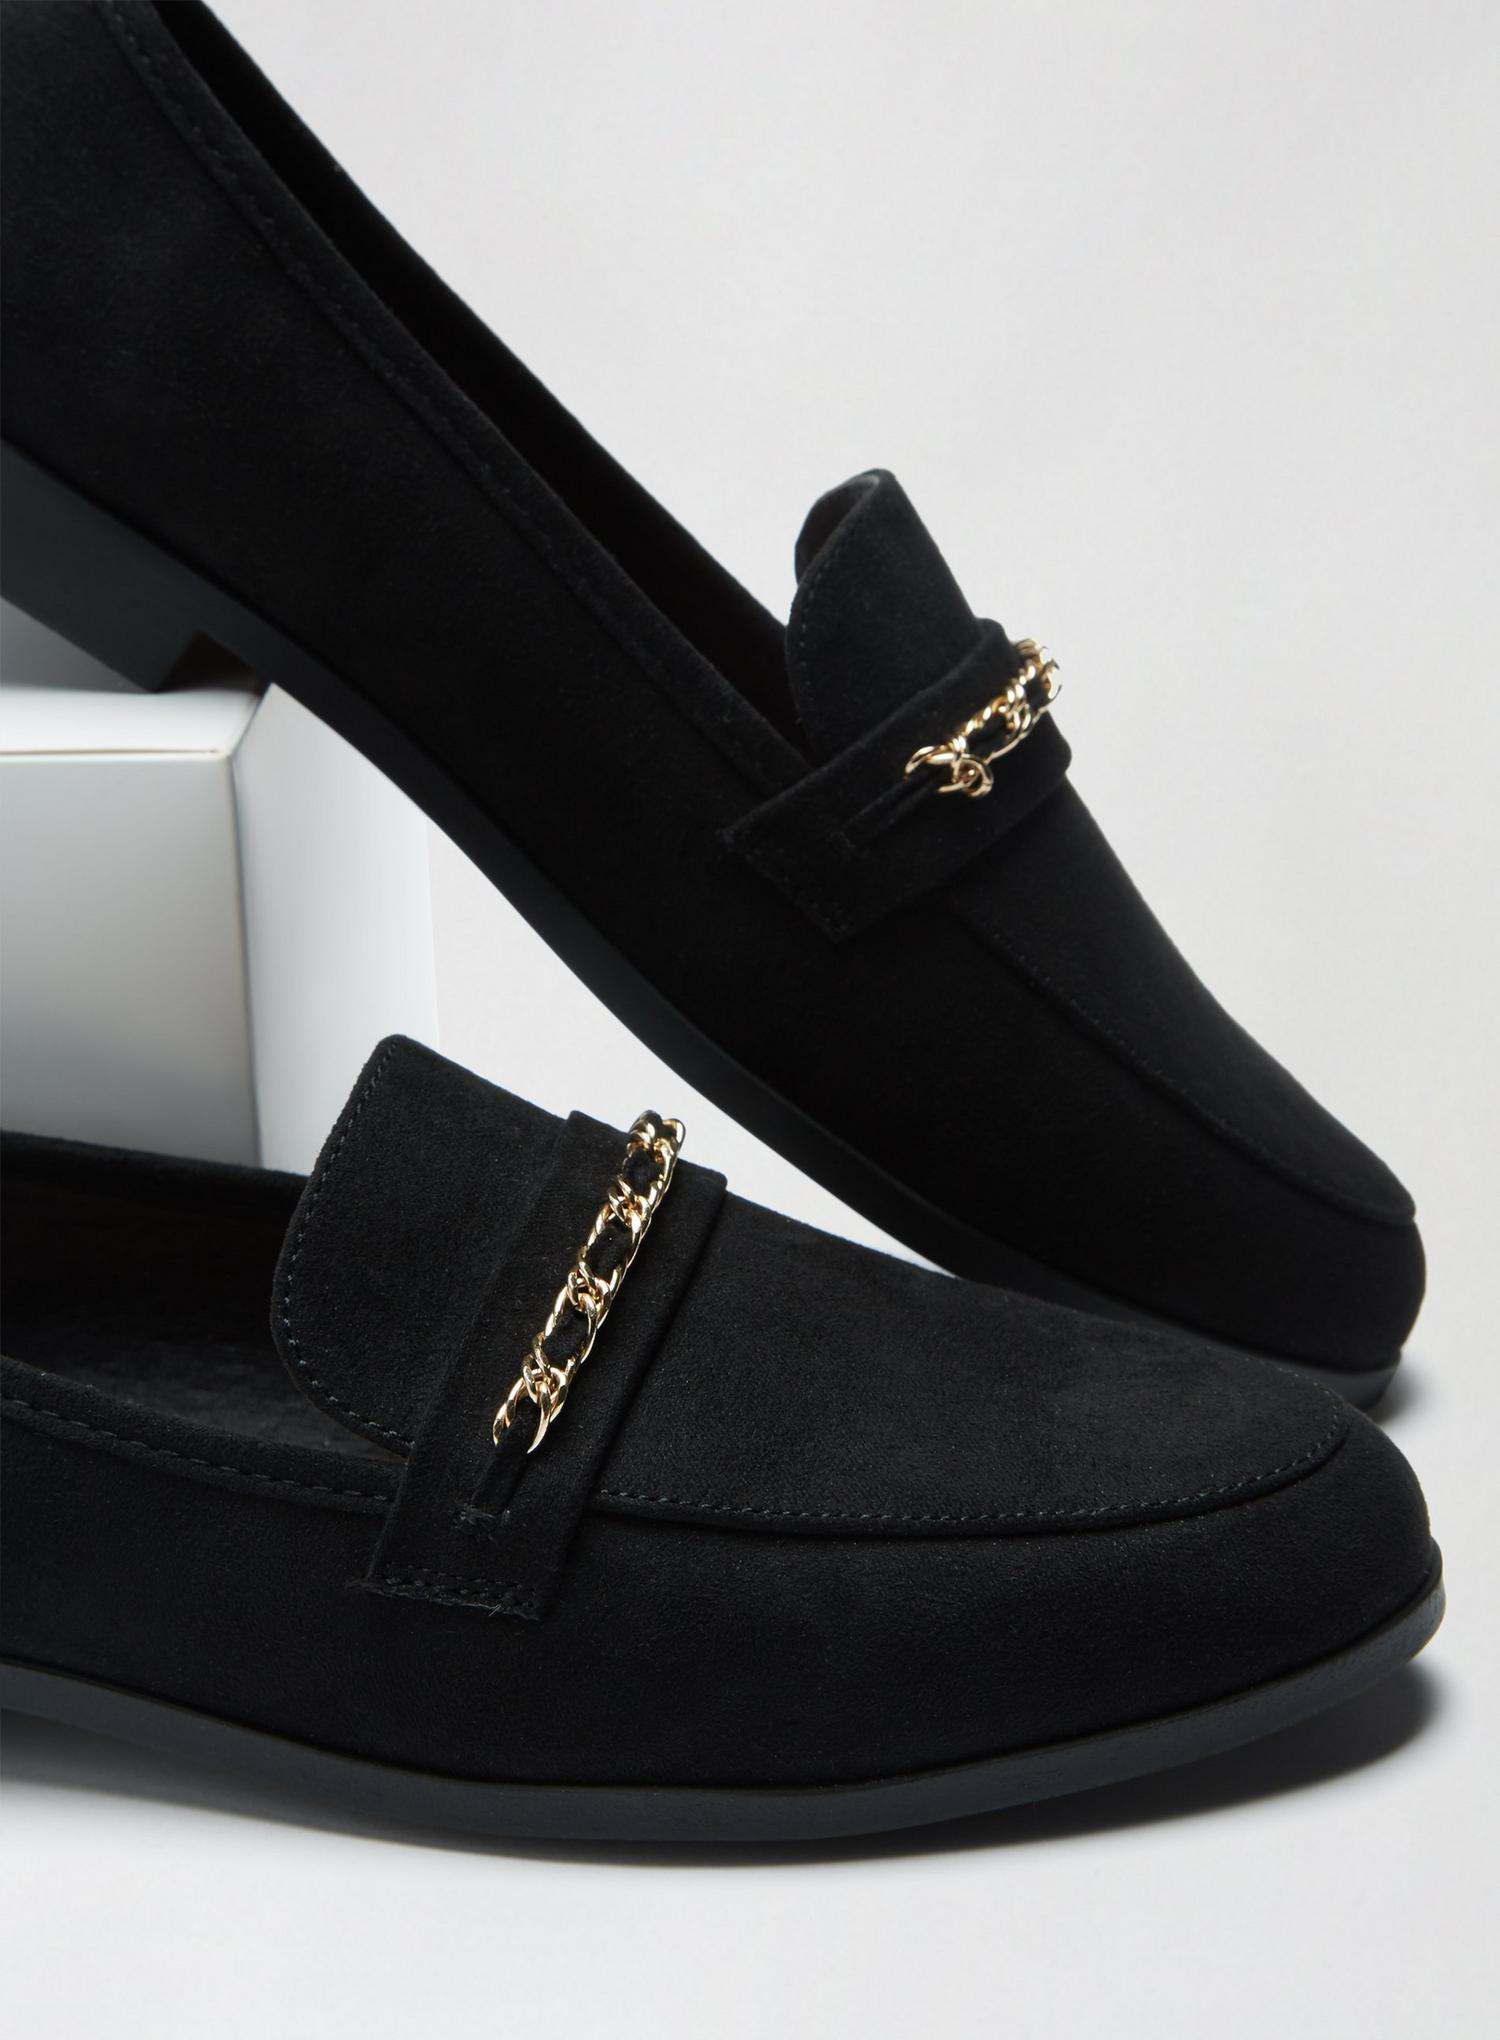 105 Black Libra Loafers image number 3